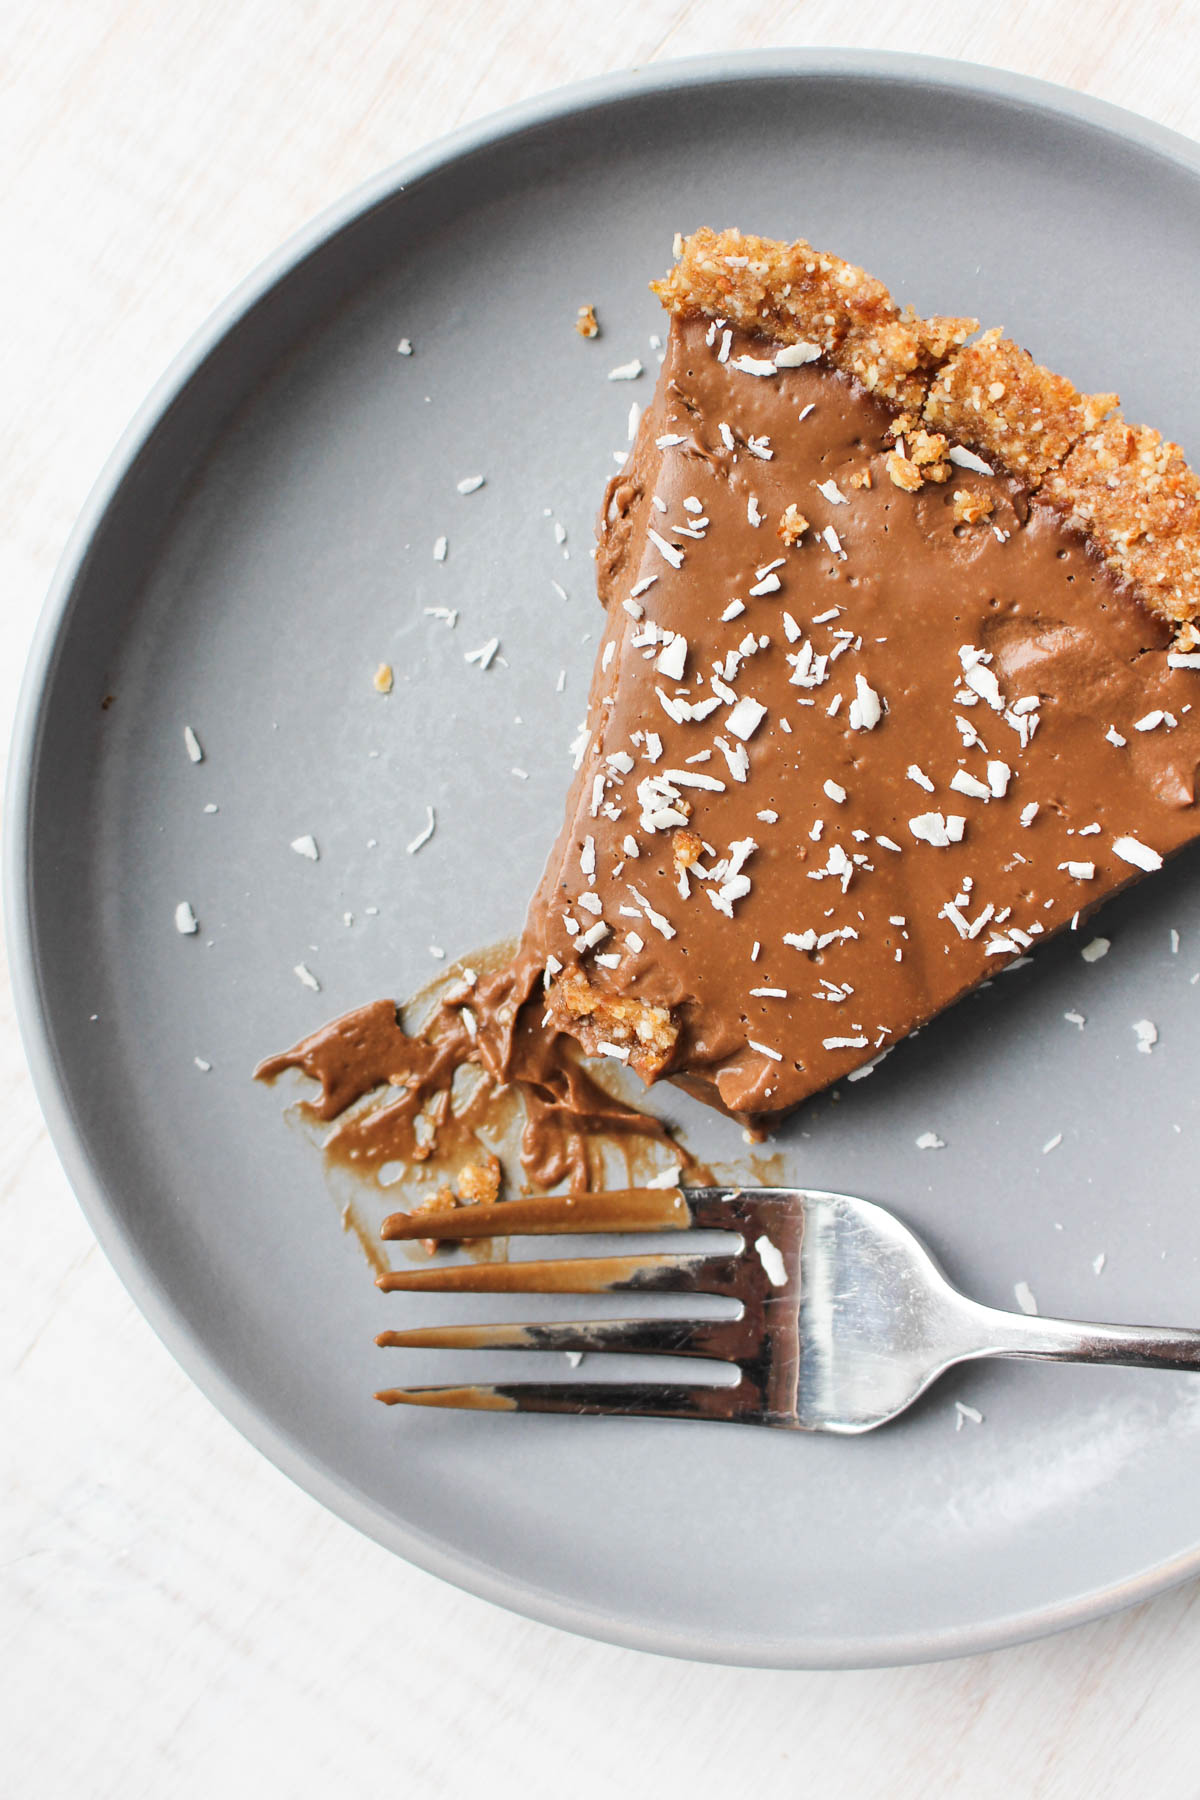 Slice of pie with a fork on the side.